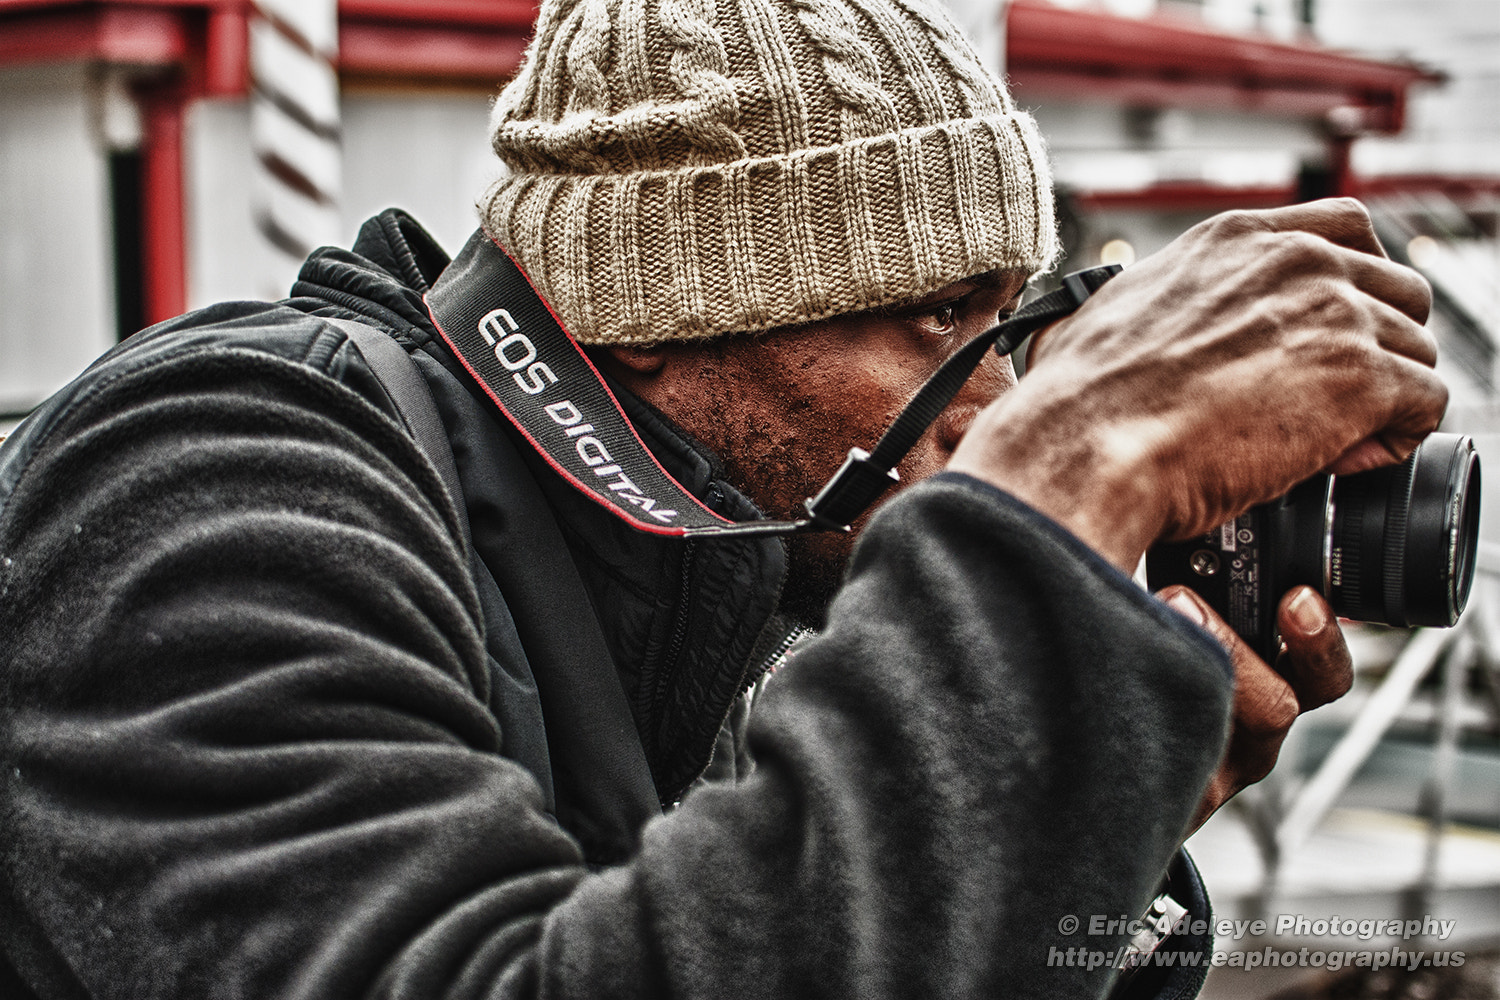 Photograph Jerome by Eric H. Adeleye on 500px